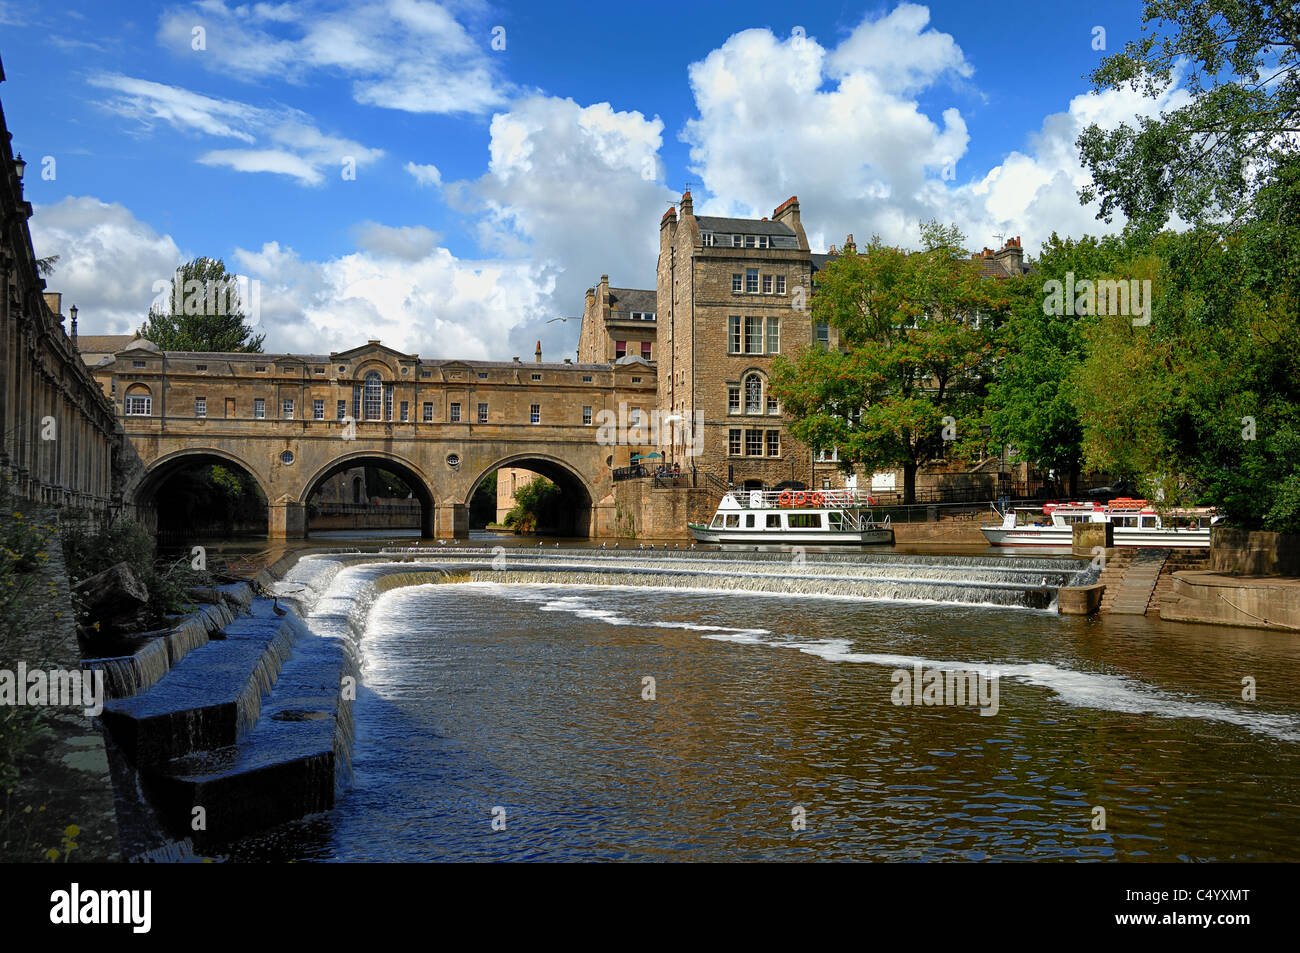 The weir on the River Avon, and Poultney Bridge in the city of Bath in Somerset - Stock Image